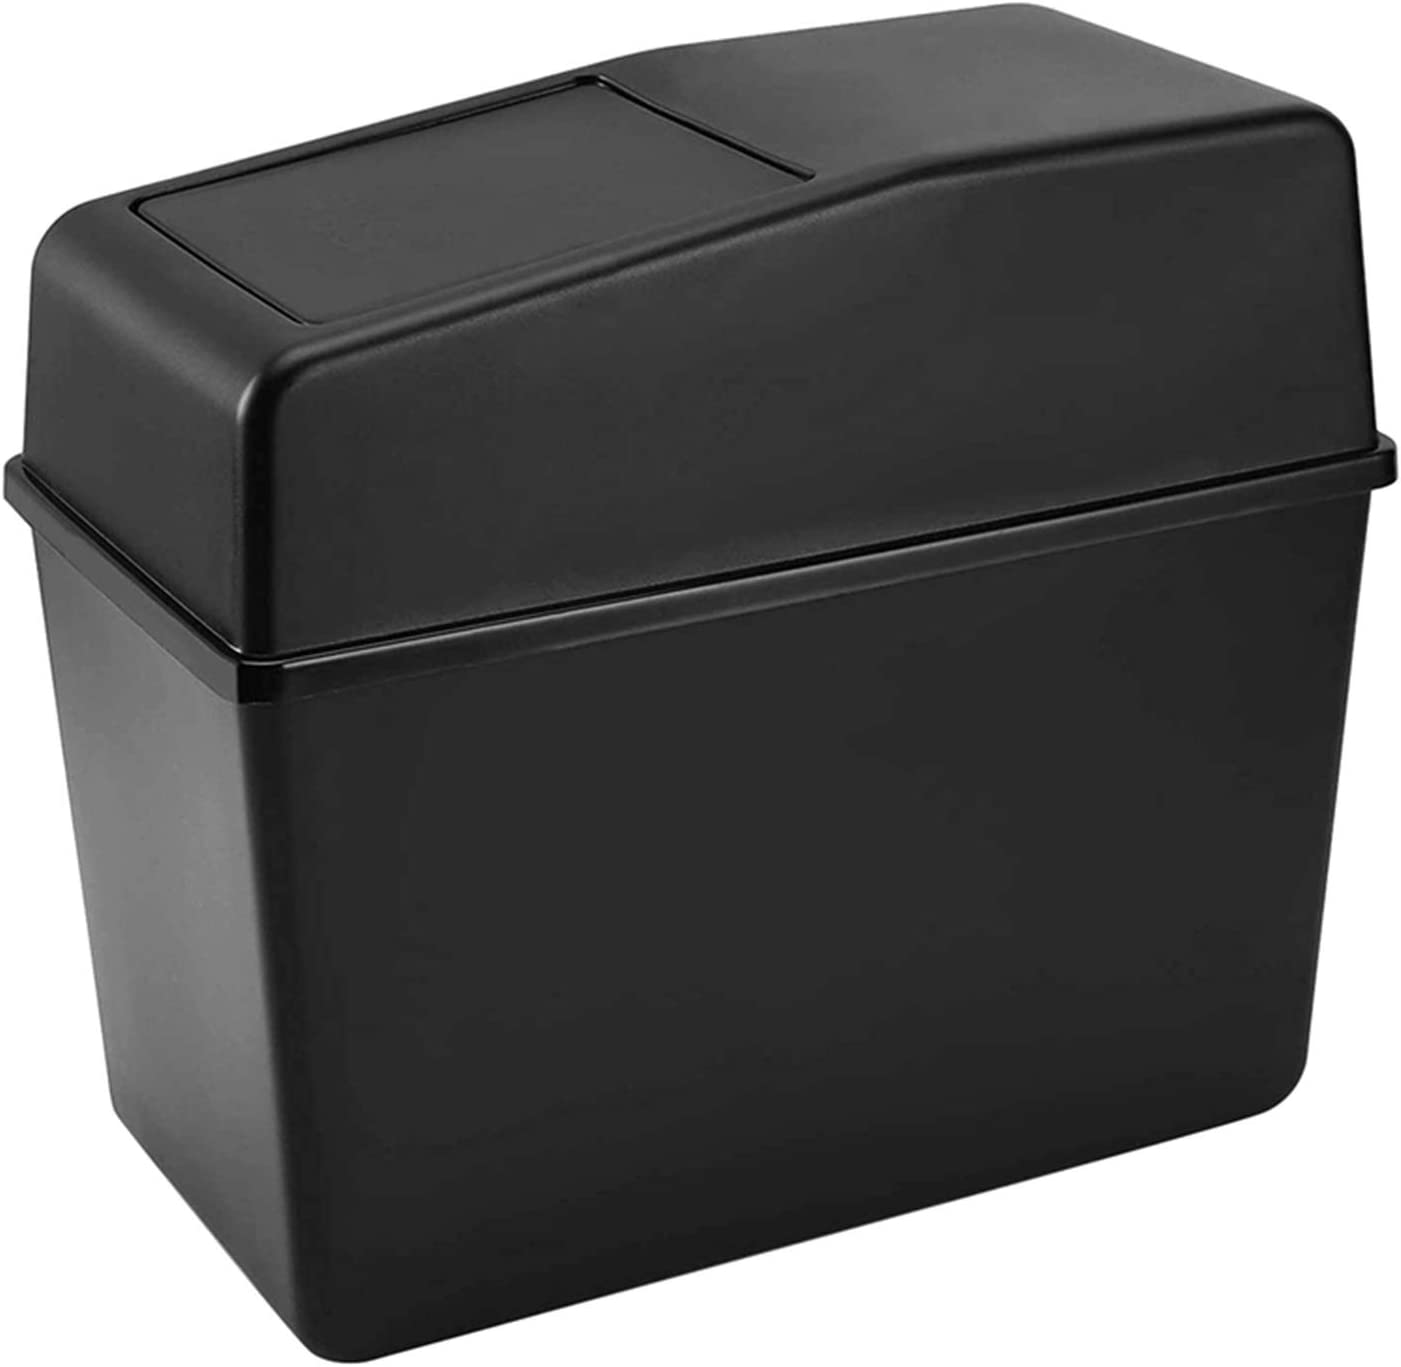 SALENEW very popular Shengsheng Sheng Car Trash Can Max 74% OFF Vehicle Orga Garbage with Lid